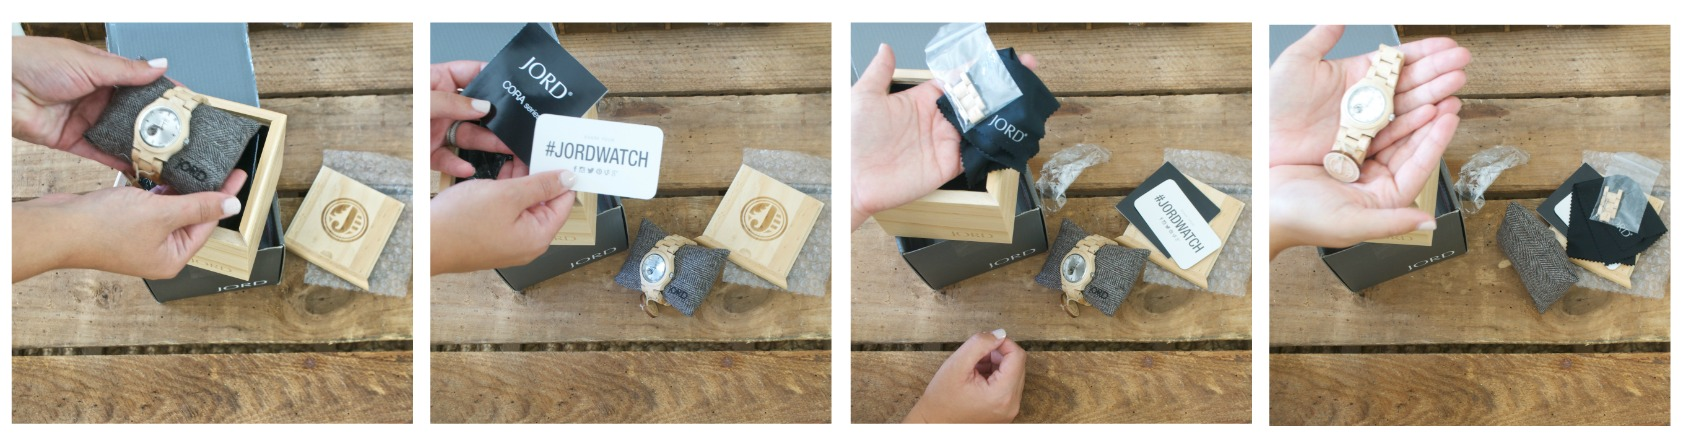 Jord Watch- Wooden Watch- Unpacking